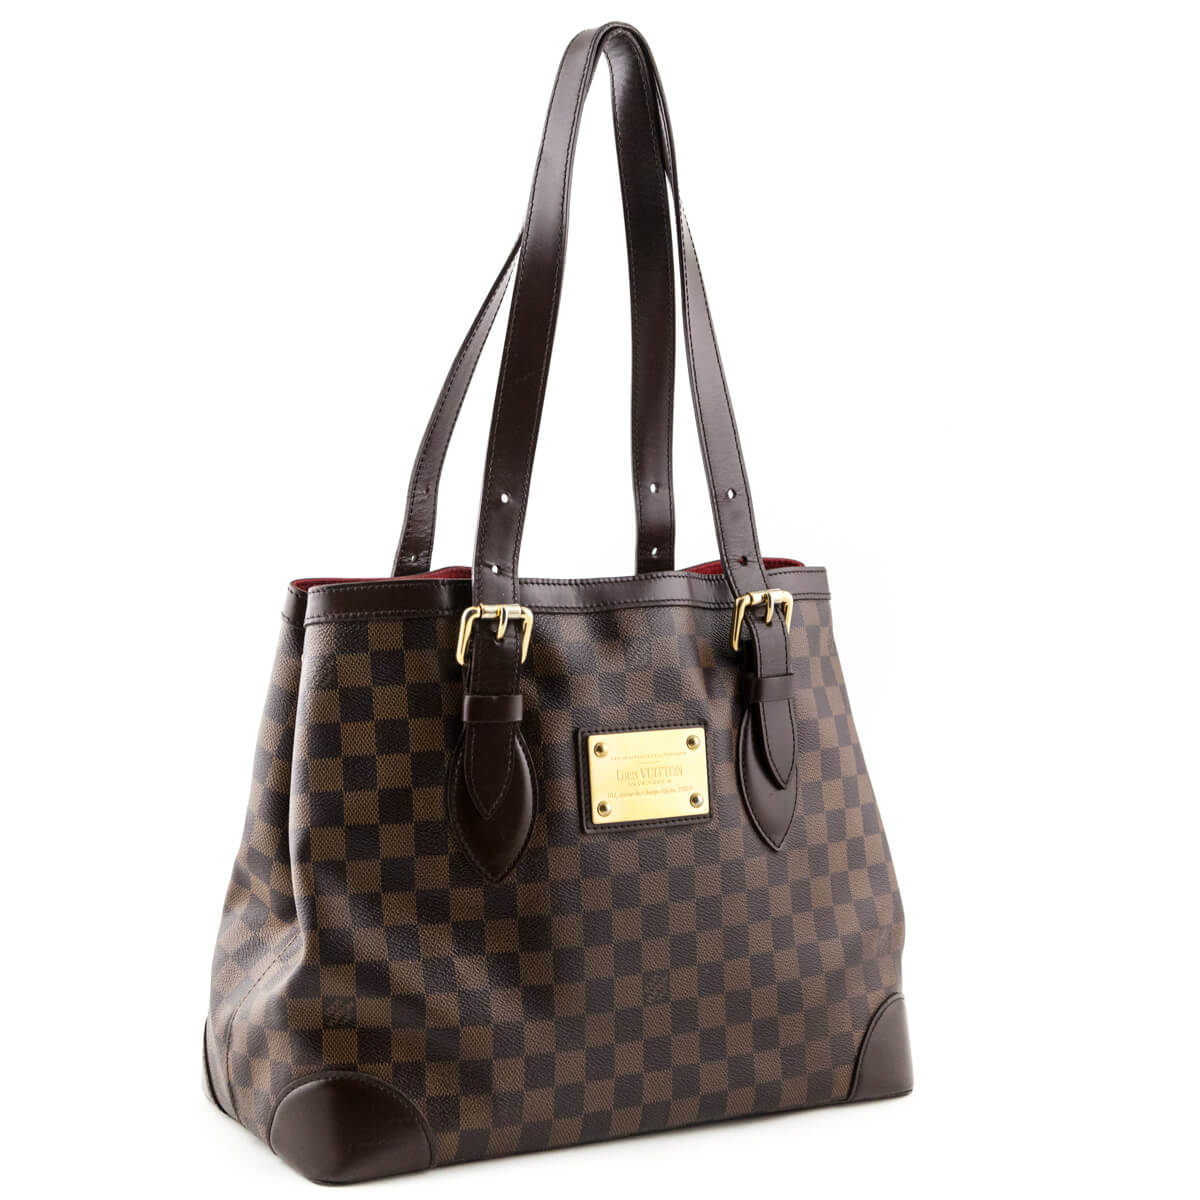 6f84f0bc7aca ... Louis Vuitton Damier Ebene Hampstead MM - LOVE that BAG - Preowned  Authentic Designer Handbags ...